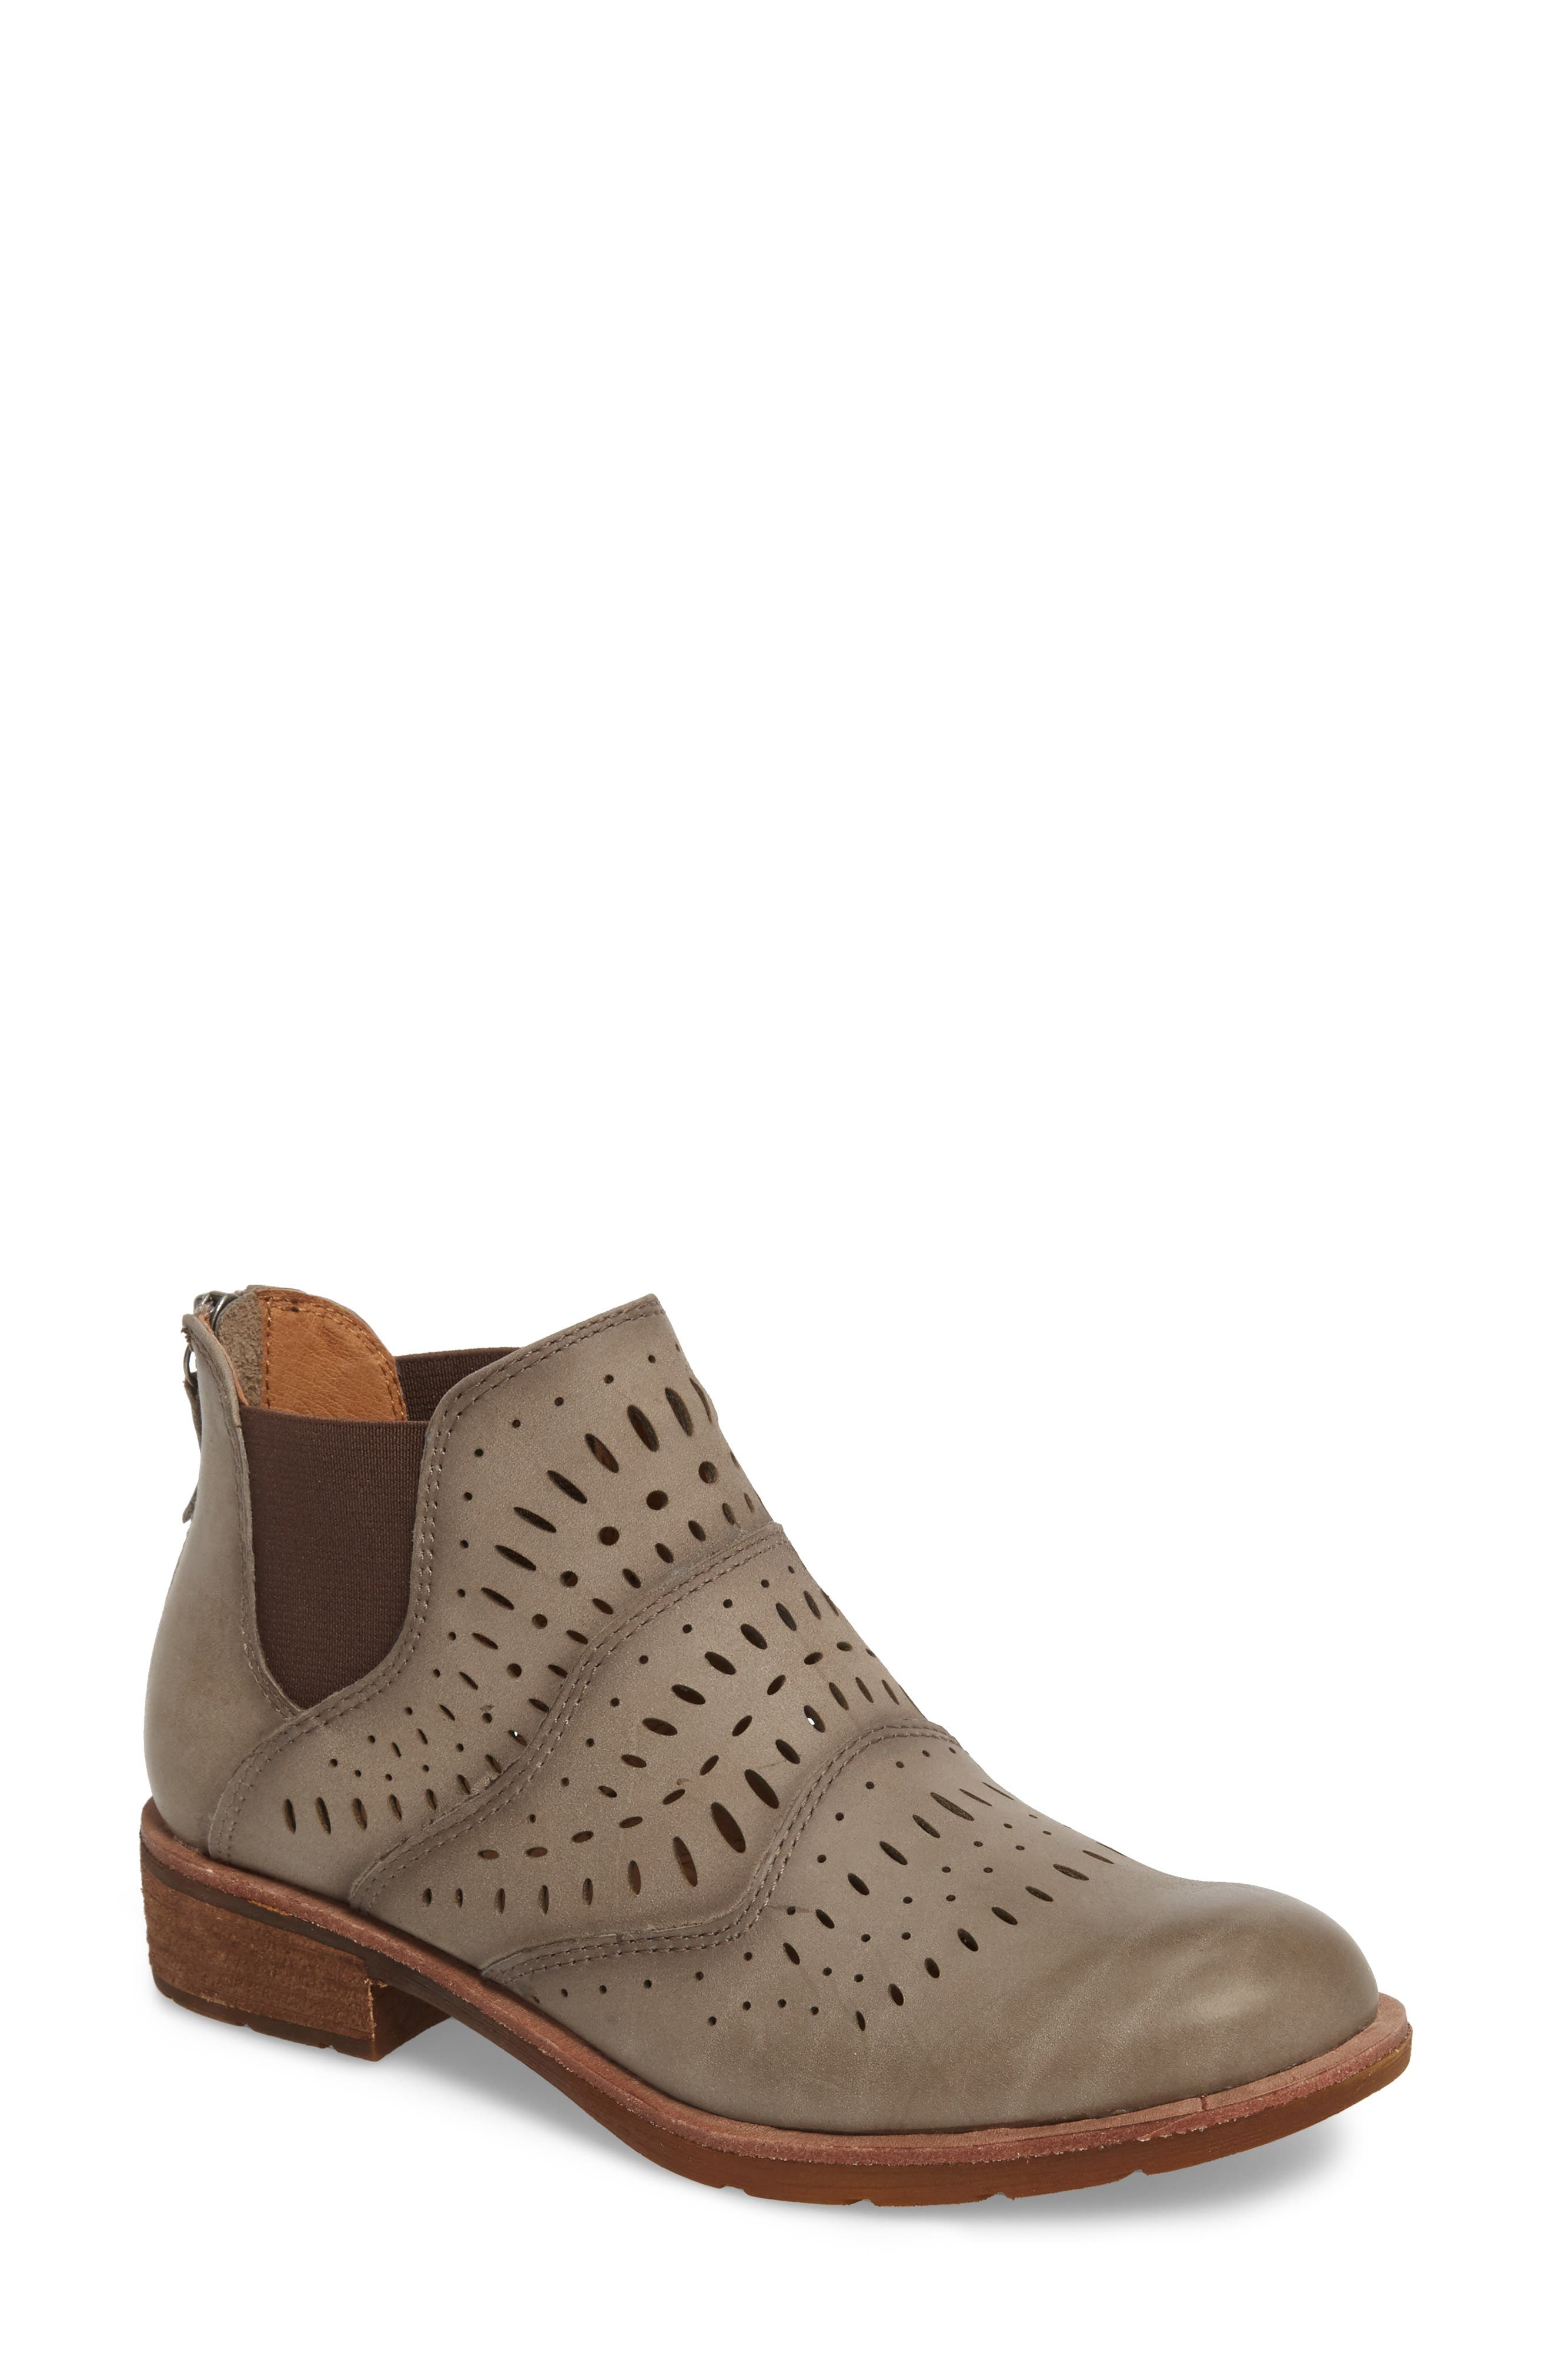 Brenley Bootie,                             Main thumbnail 1, color,                             PAPER MACHE GREY LEATHER